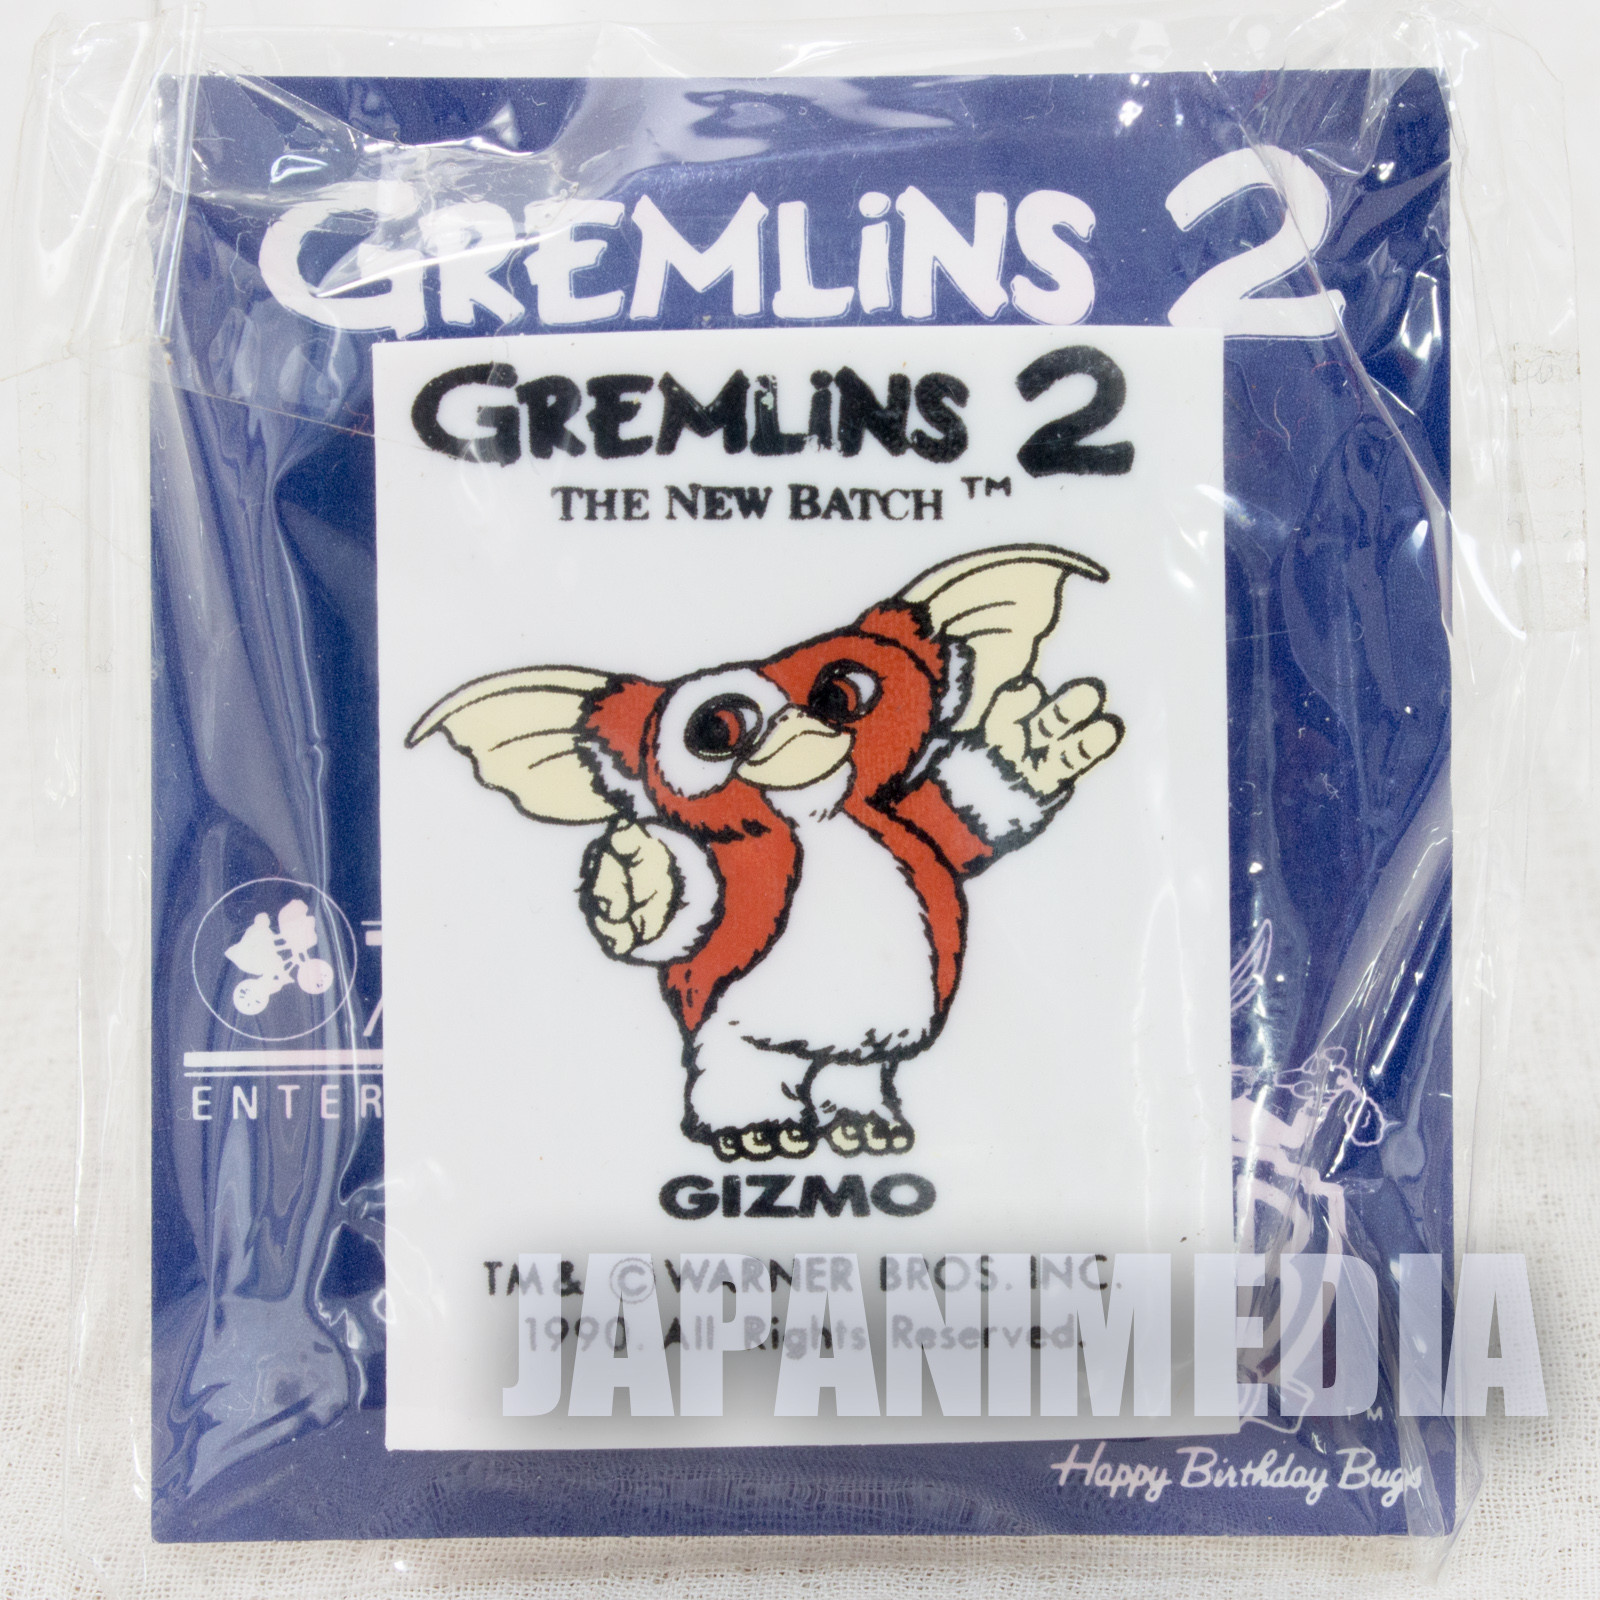 Retro RARE! Gremlins 2 The New Batch Gizmo Eraser